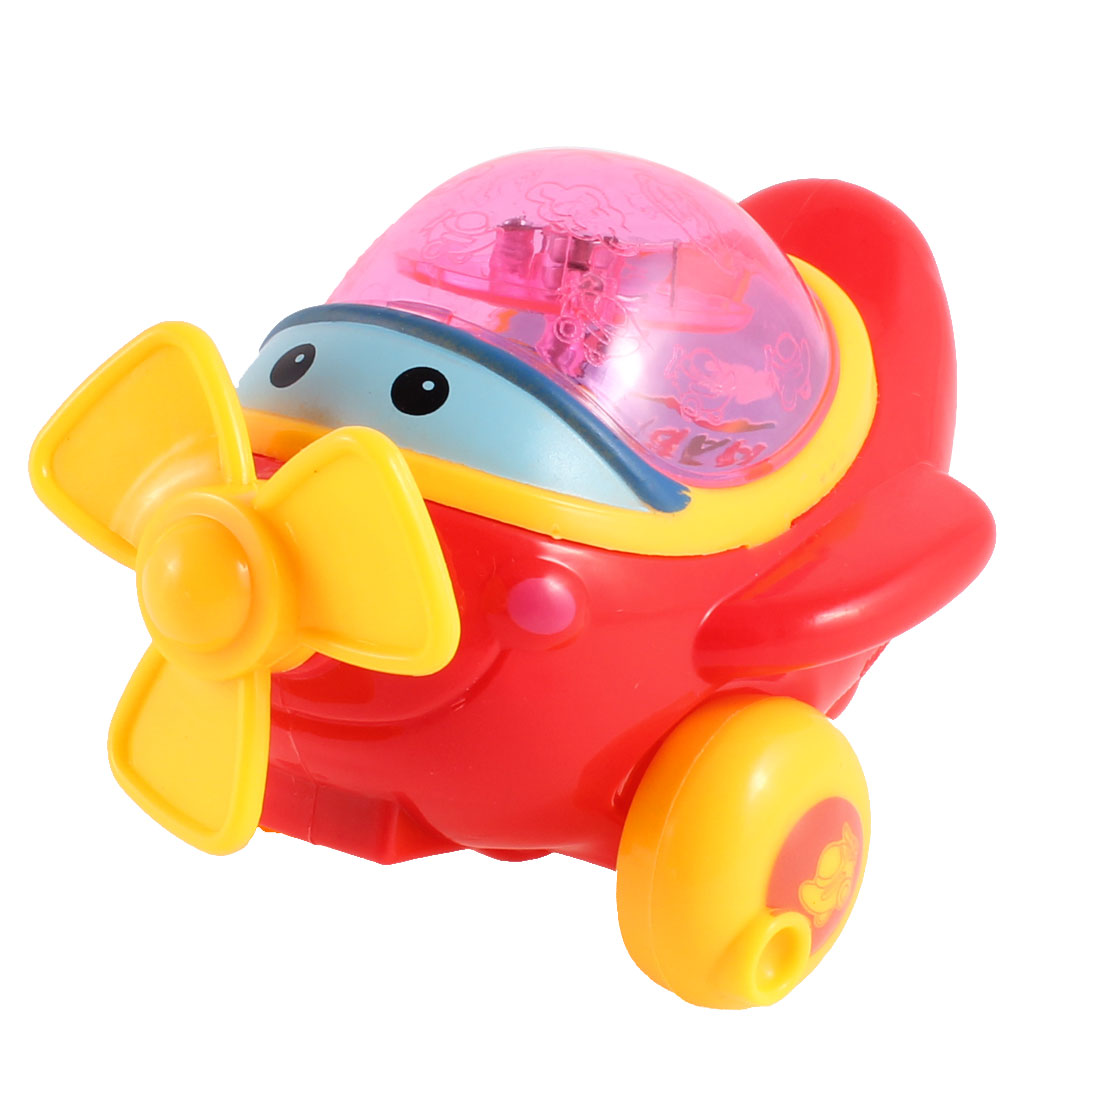 Multicolor Red Light Plastic Pull String Cartoon Airplane Toy for Child